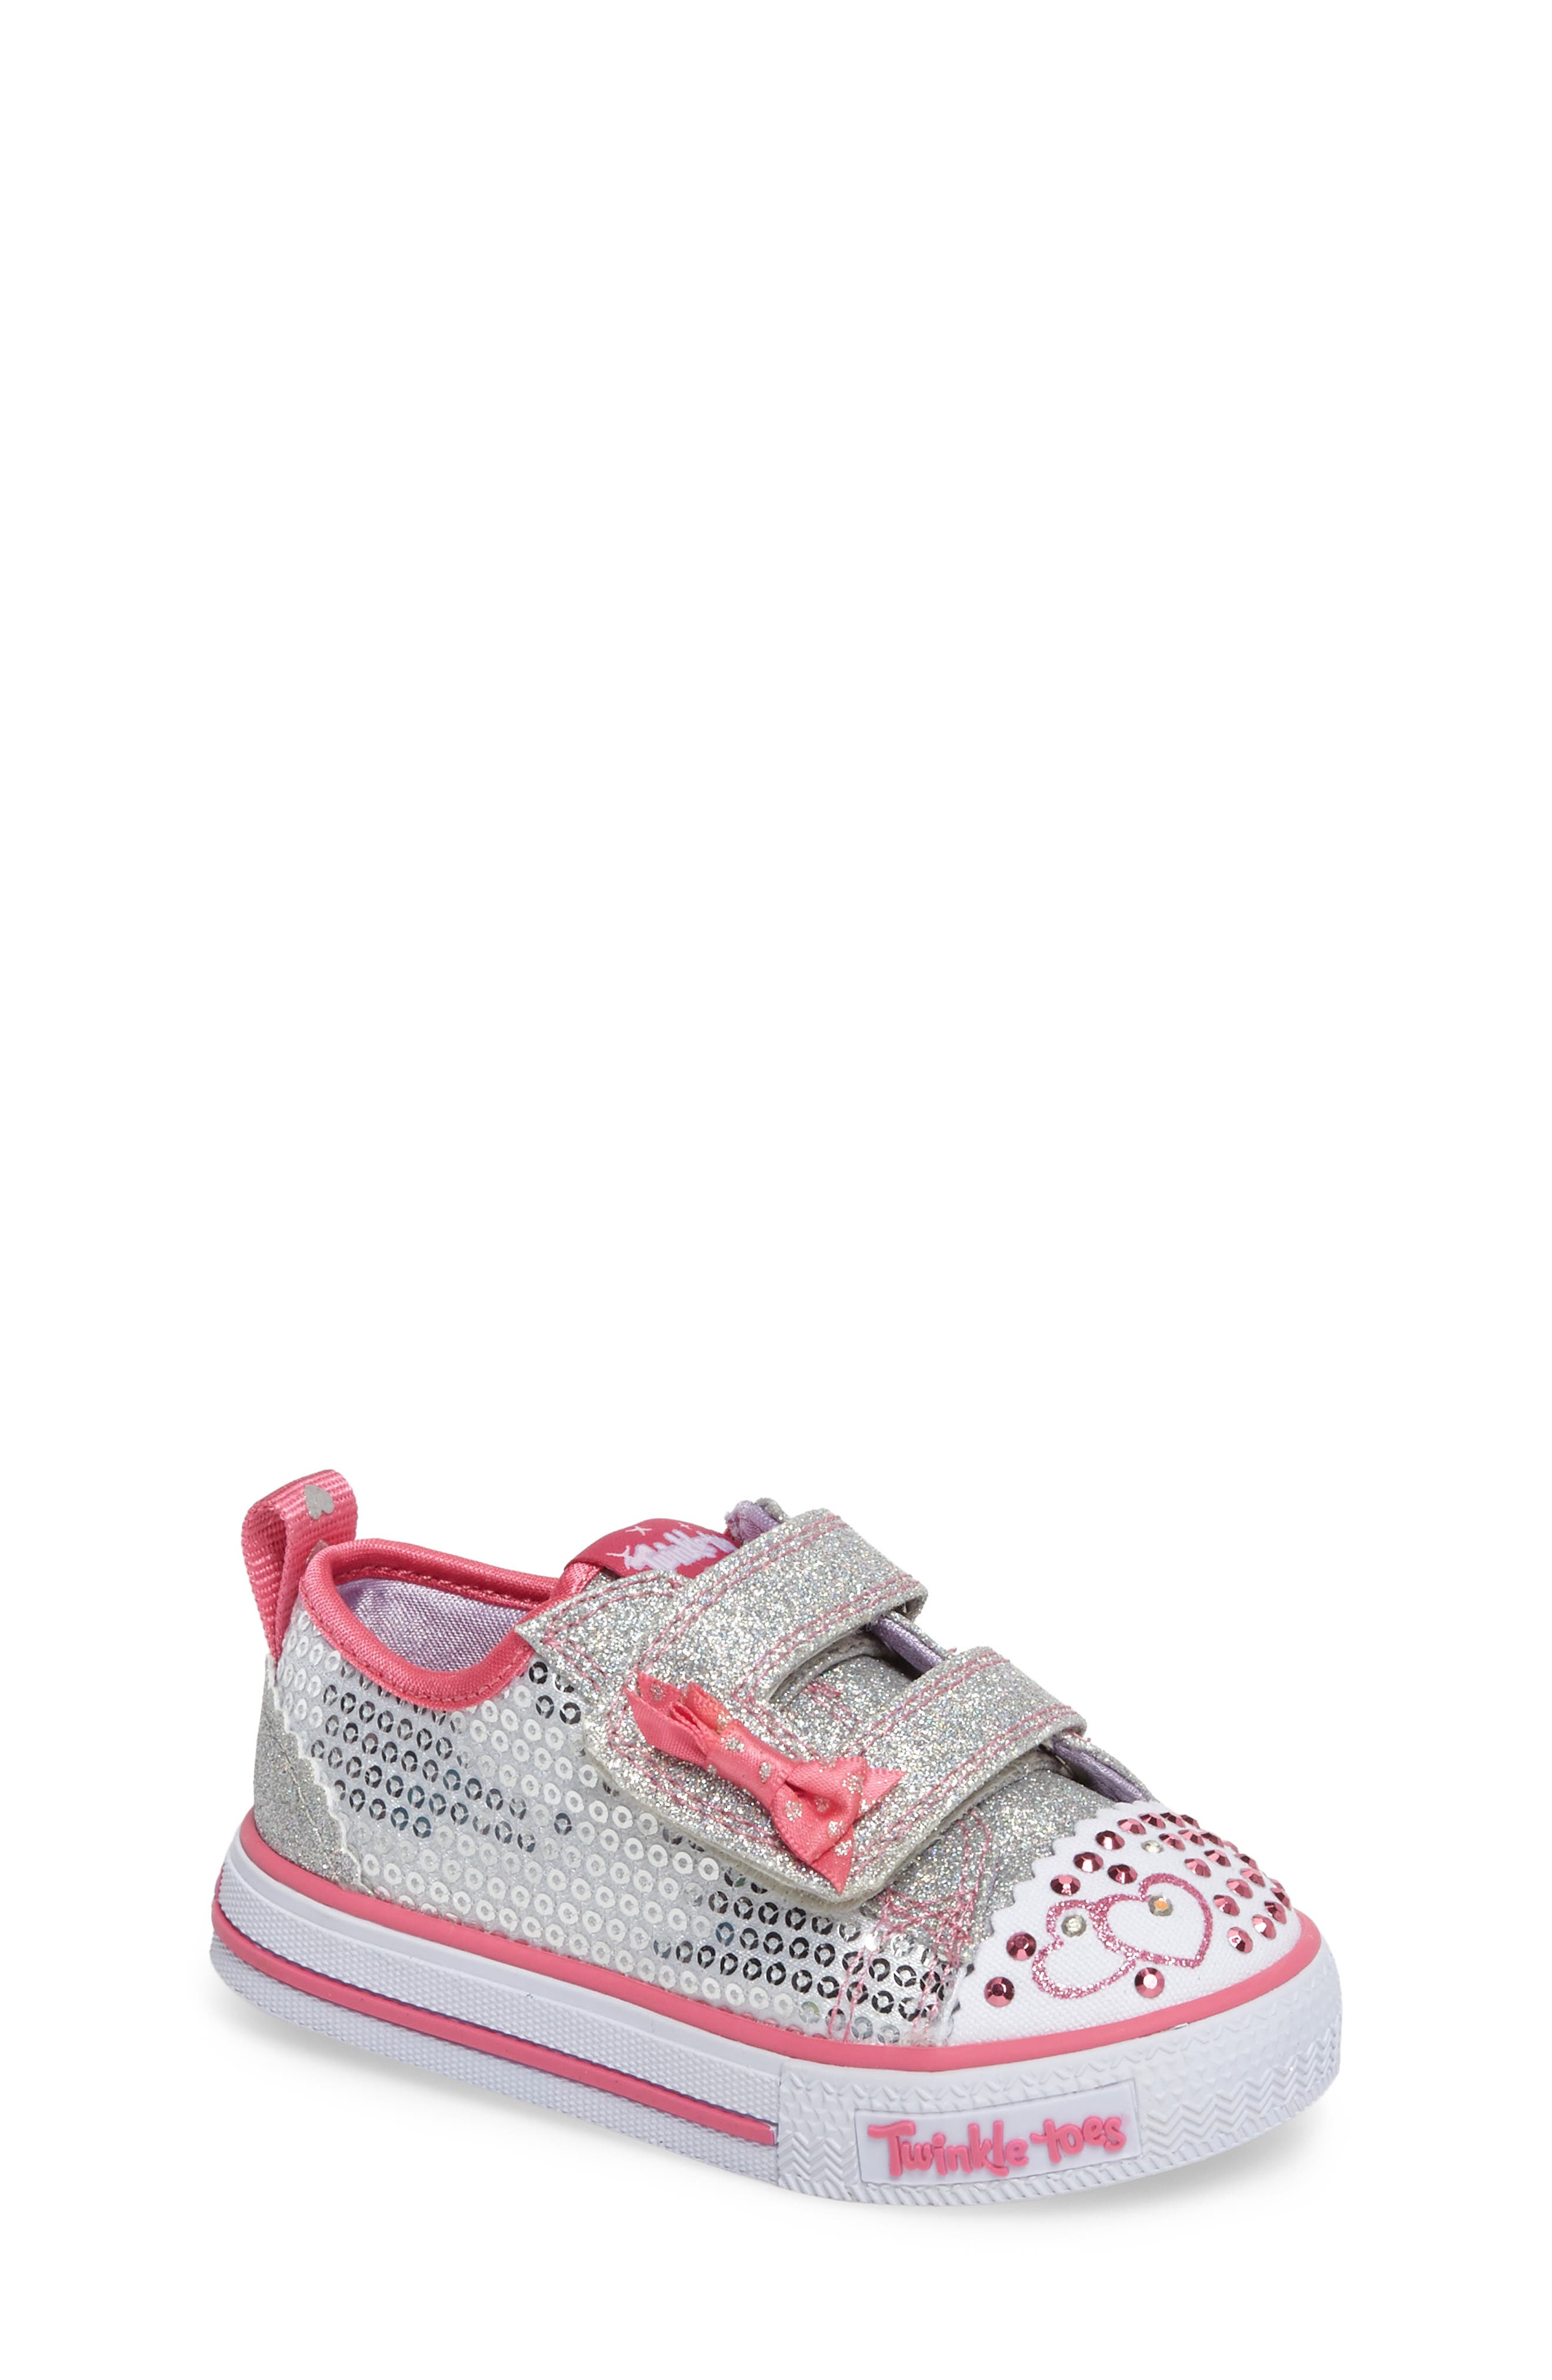 Shuffles - Itsy Bitsy Light-Up Sneaker,                             Main thumbnail 1, color,                             040